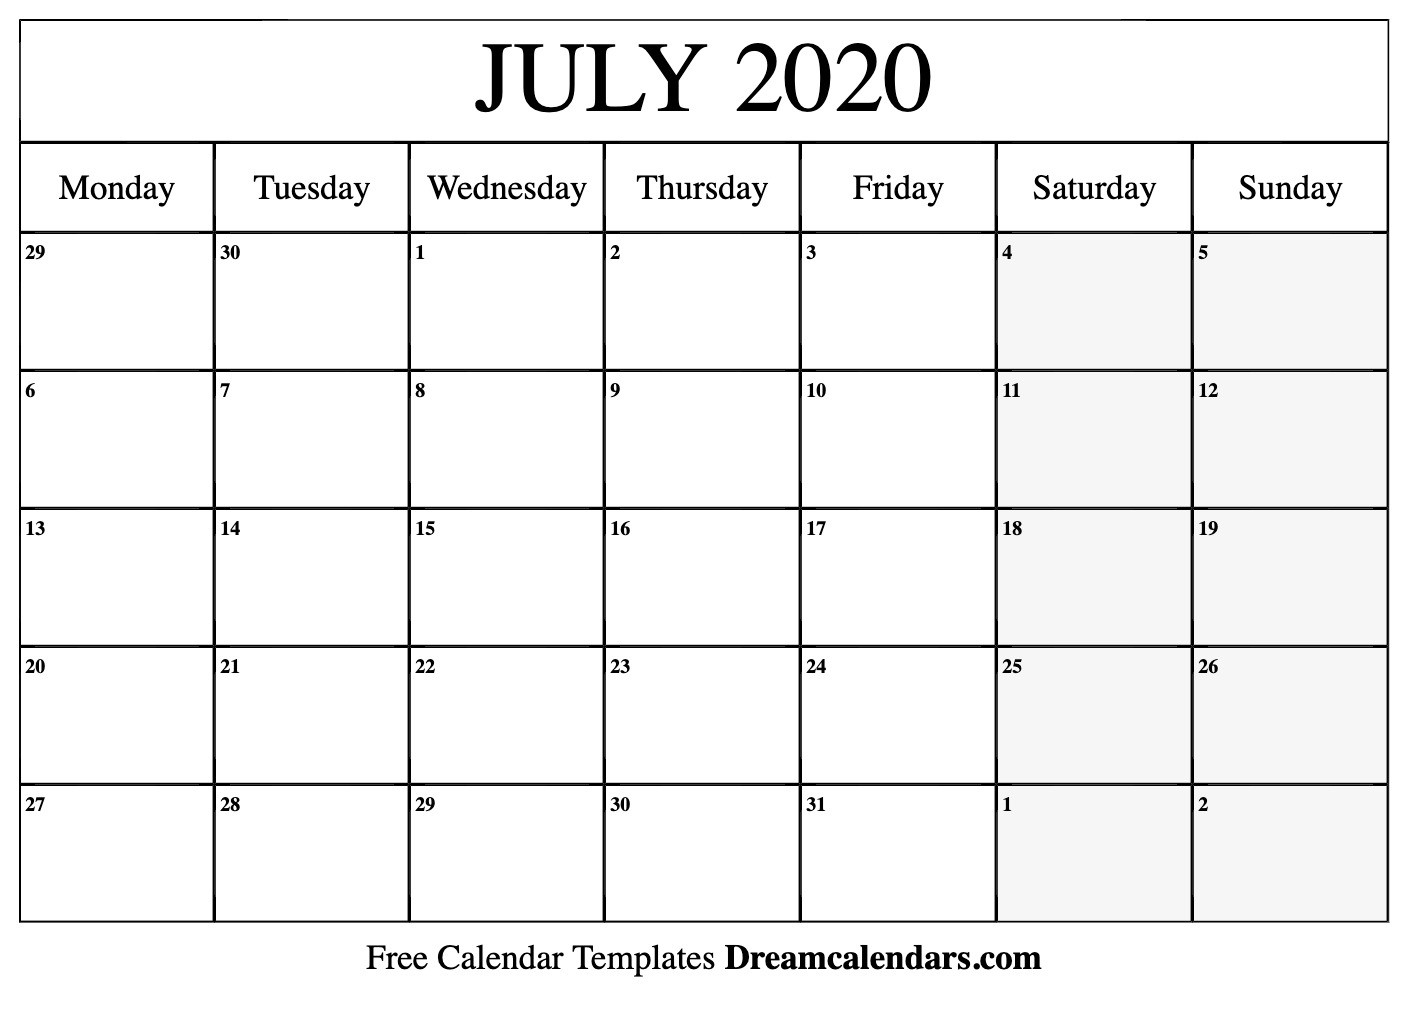 Printable July 2020 Calendar  Depo Provera Calendar For  8/2020